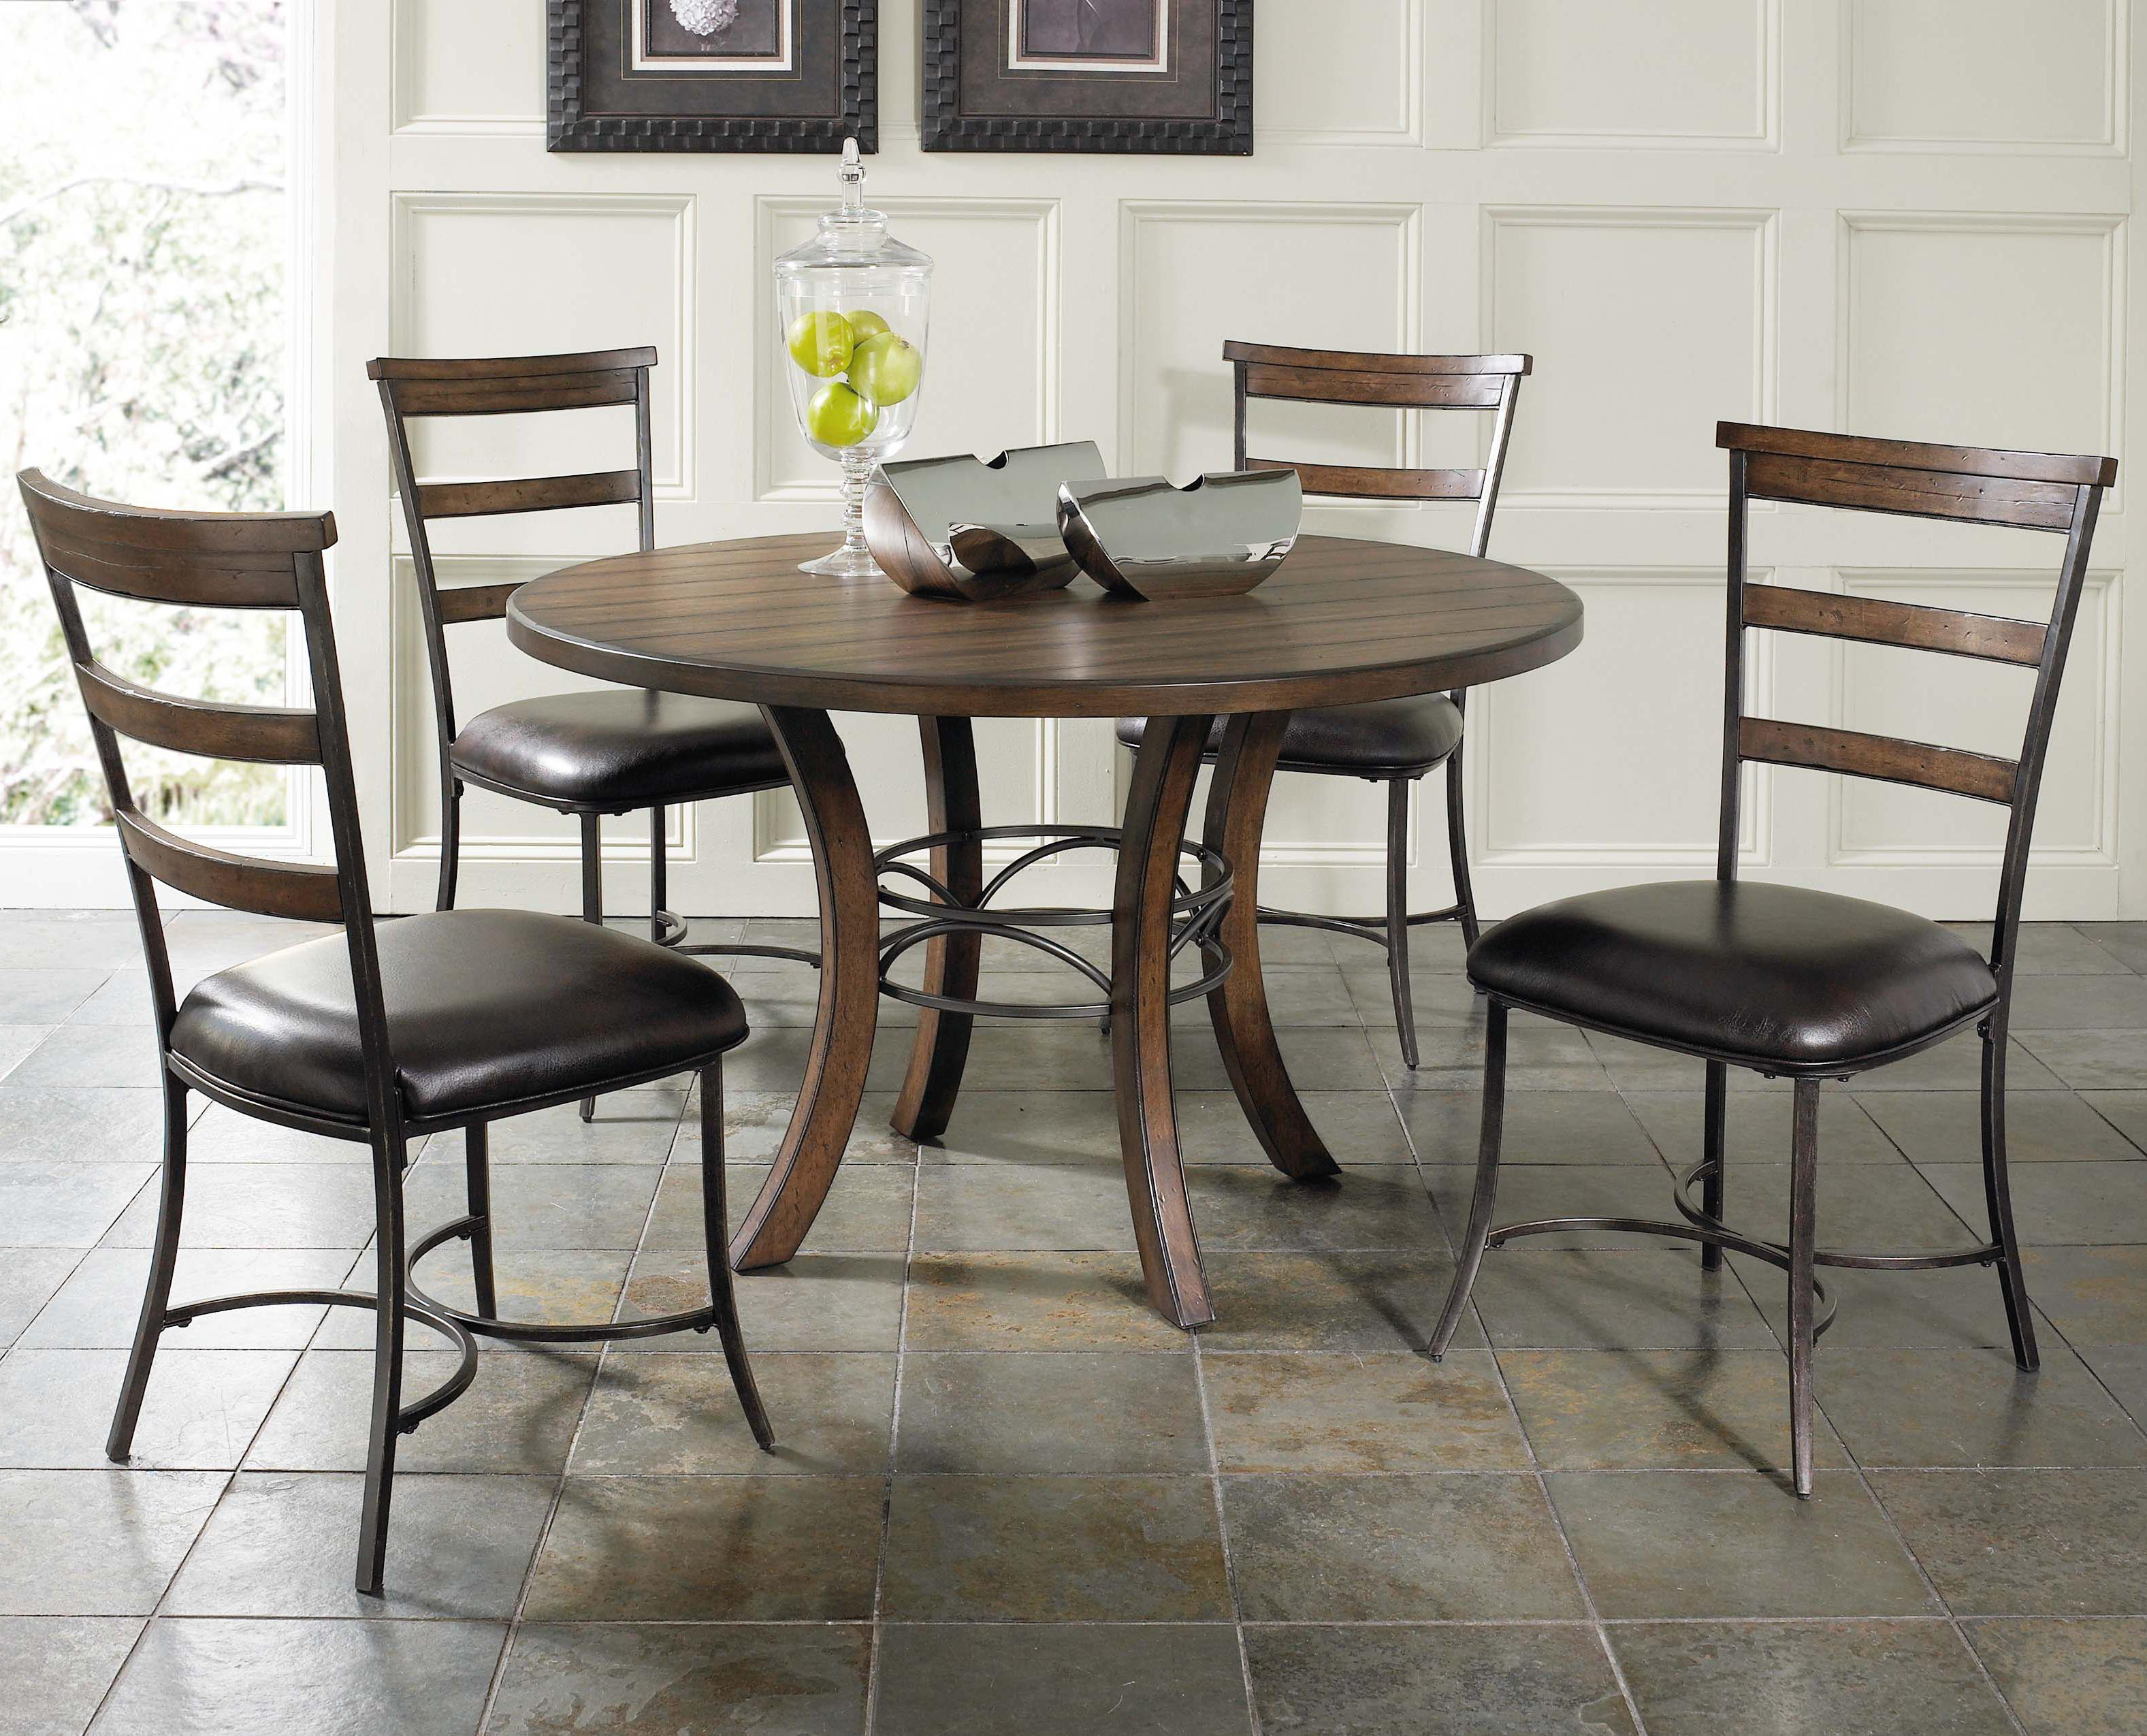 Hillsdale Cameron 5 Piece Metal Ring Dining Set   Item Number: 4671 814+